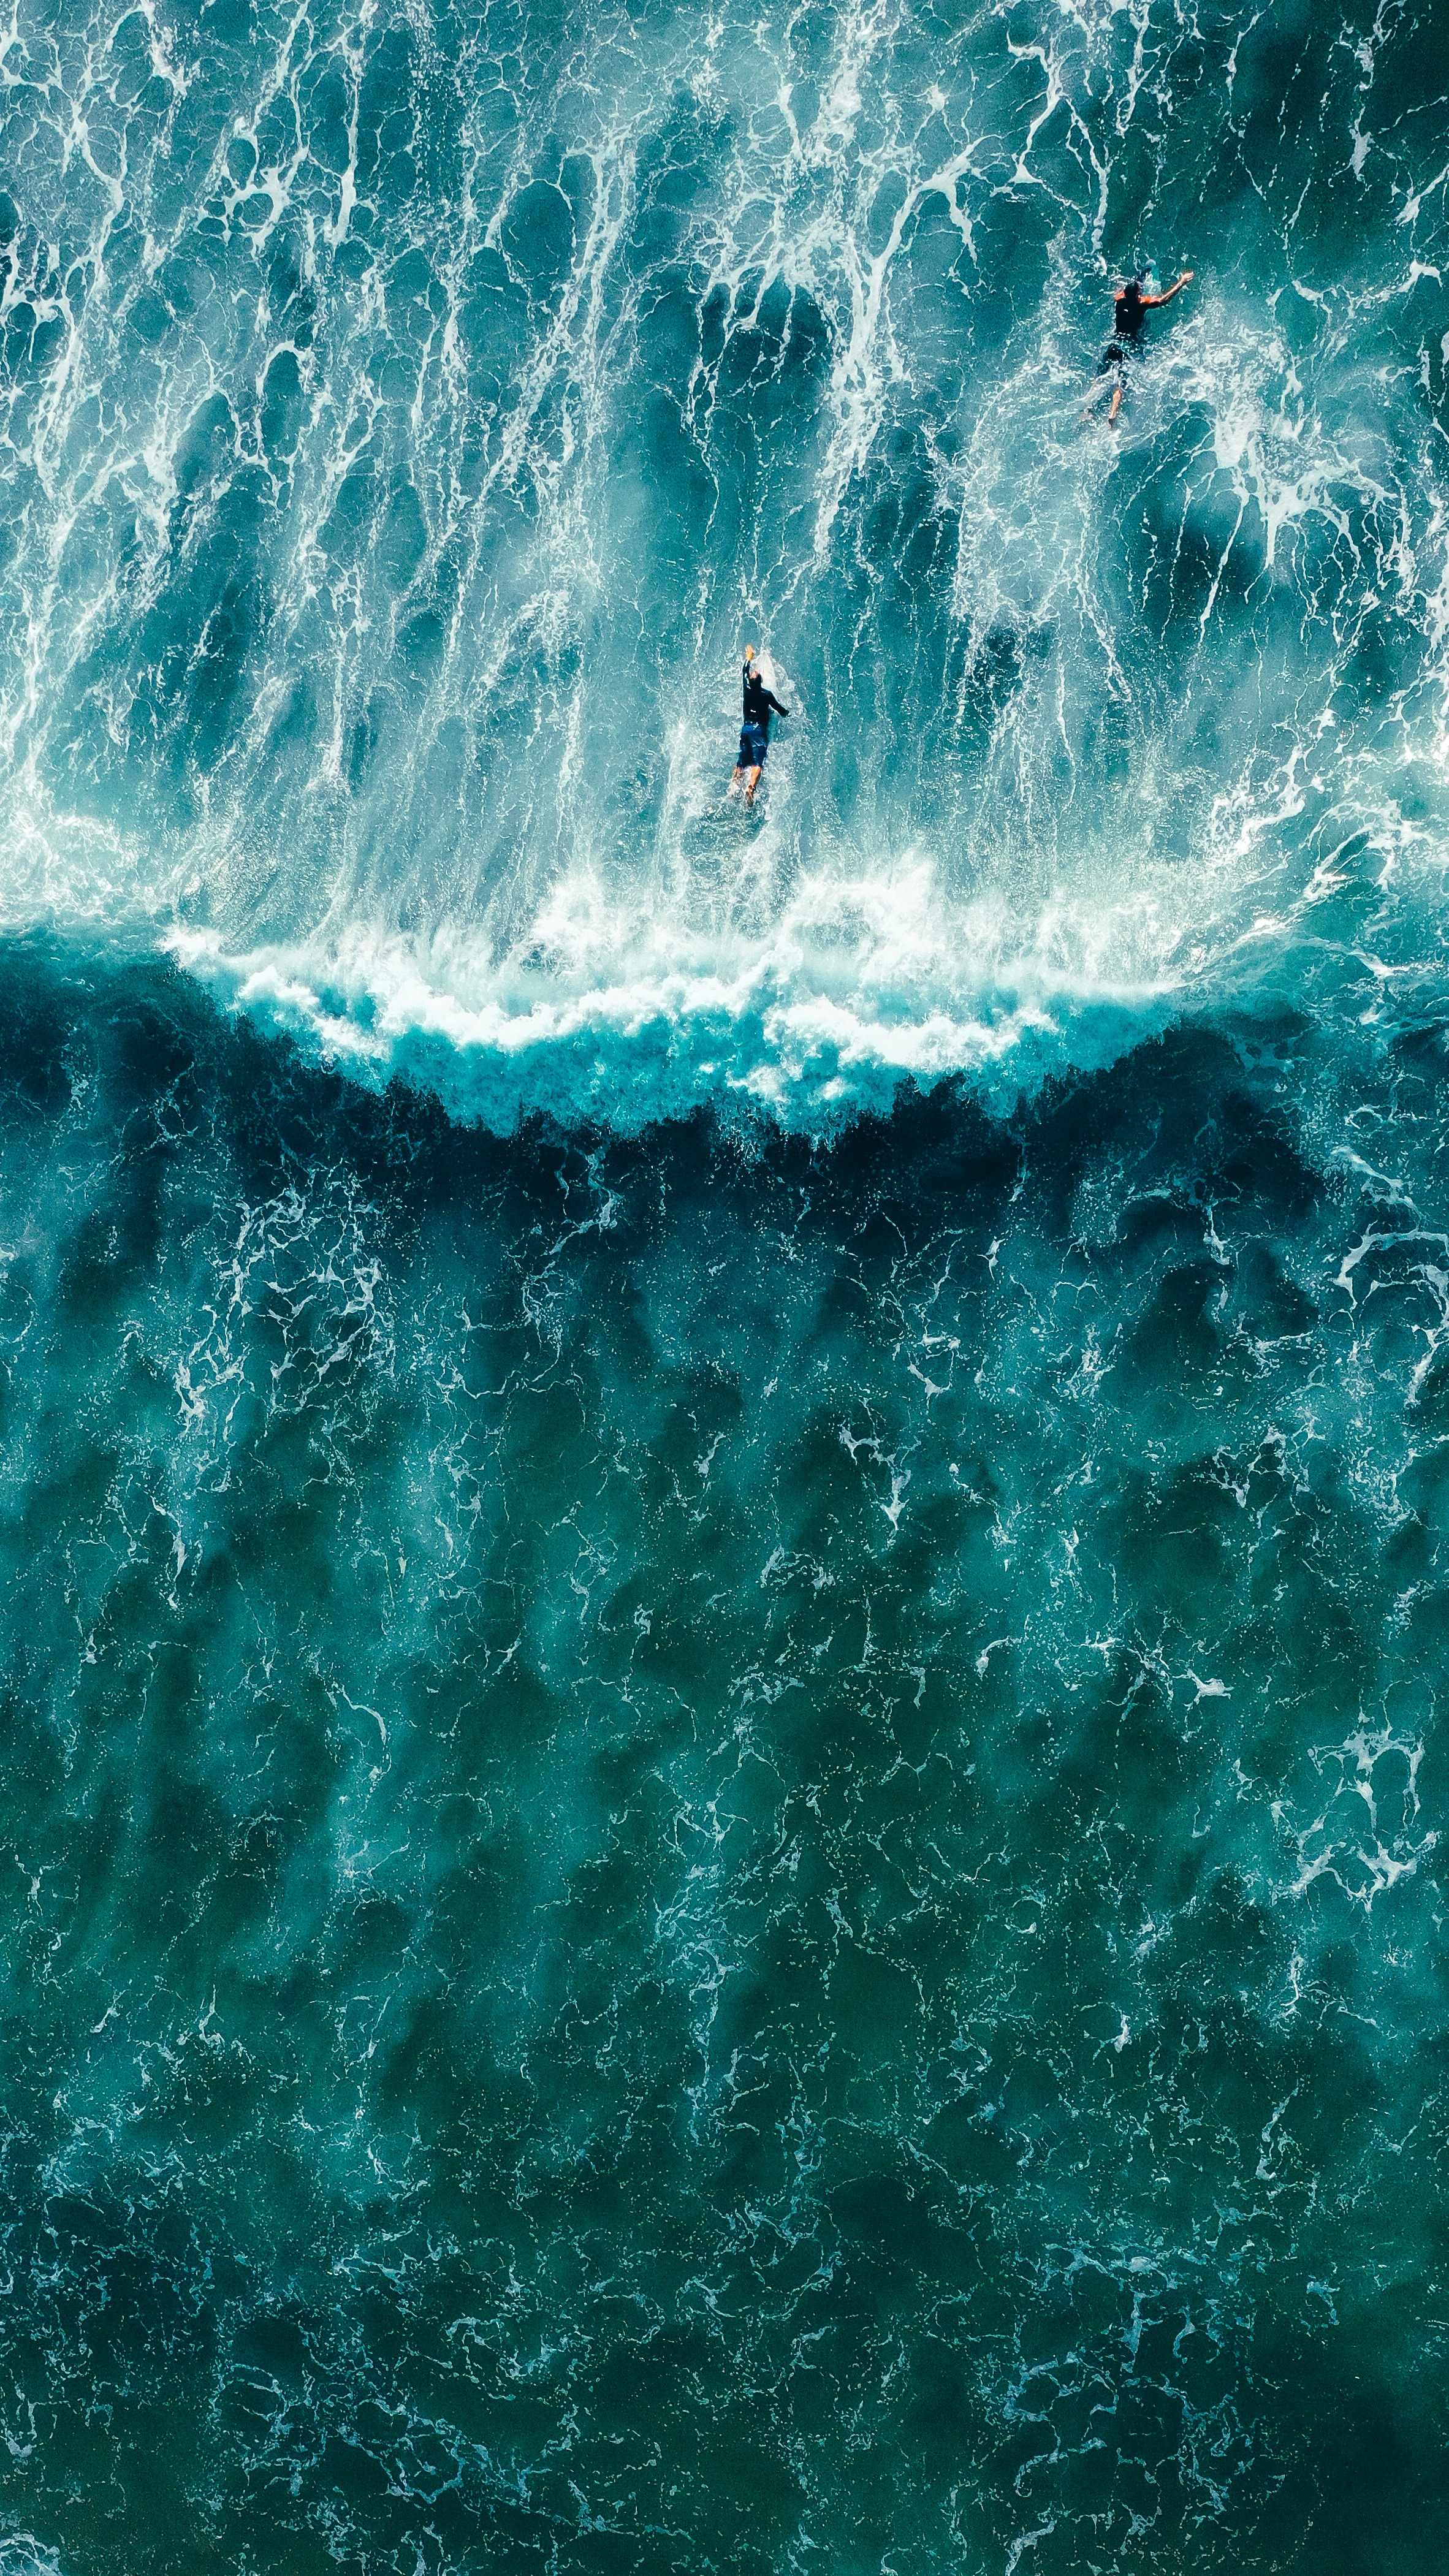 138453 download wallpaper Sports, Surfers, View From Above, Serfing, Ocean, Waves screensavers and pictures for free